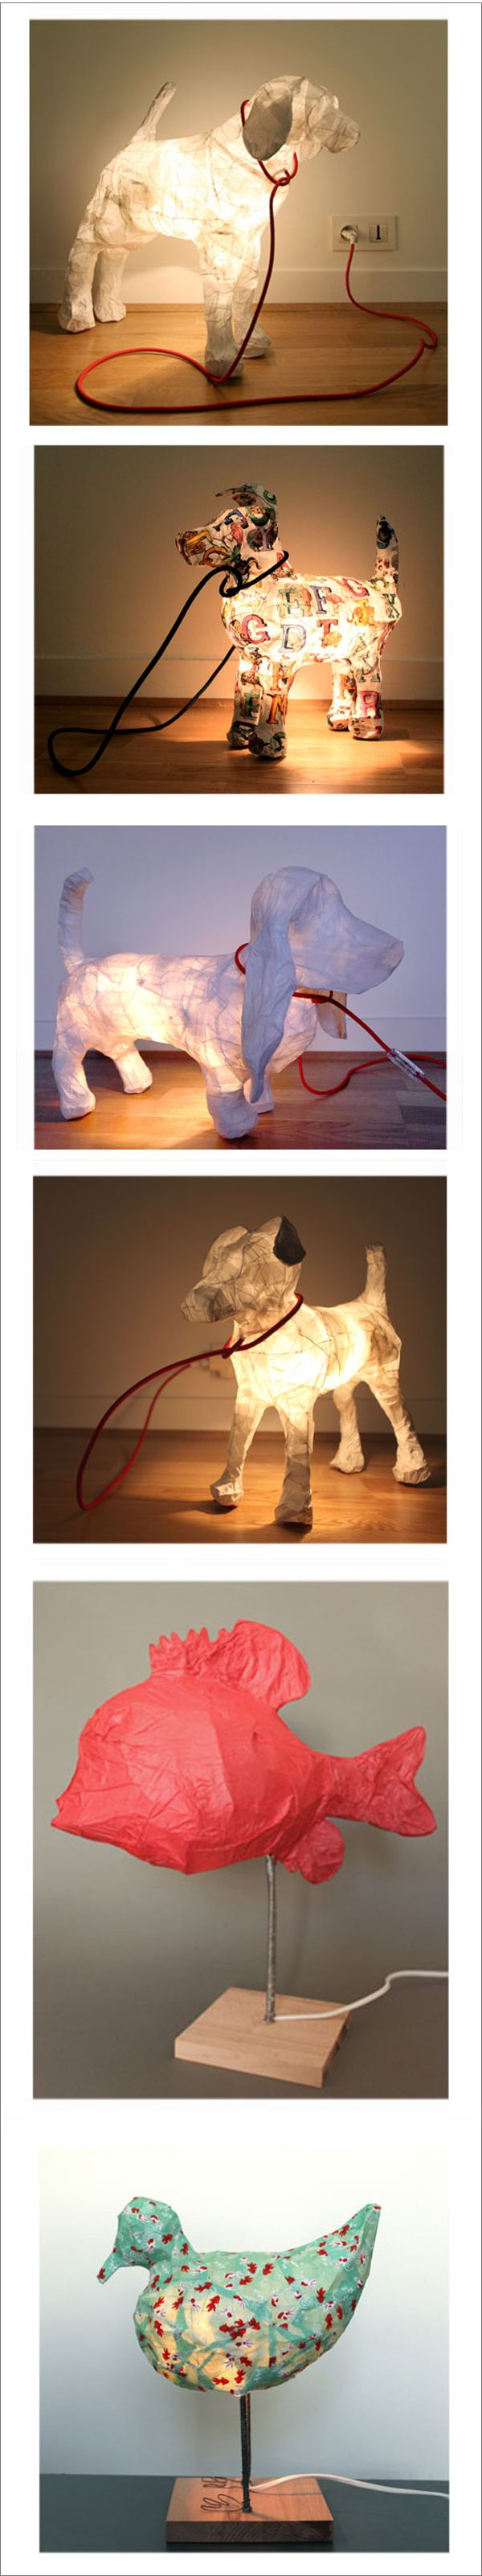 Paper dog lamps by Marie-Astrid Montagnier from La Fabrique de Marie.